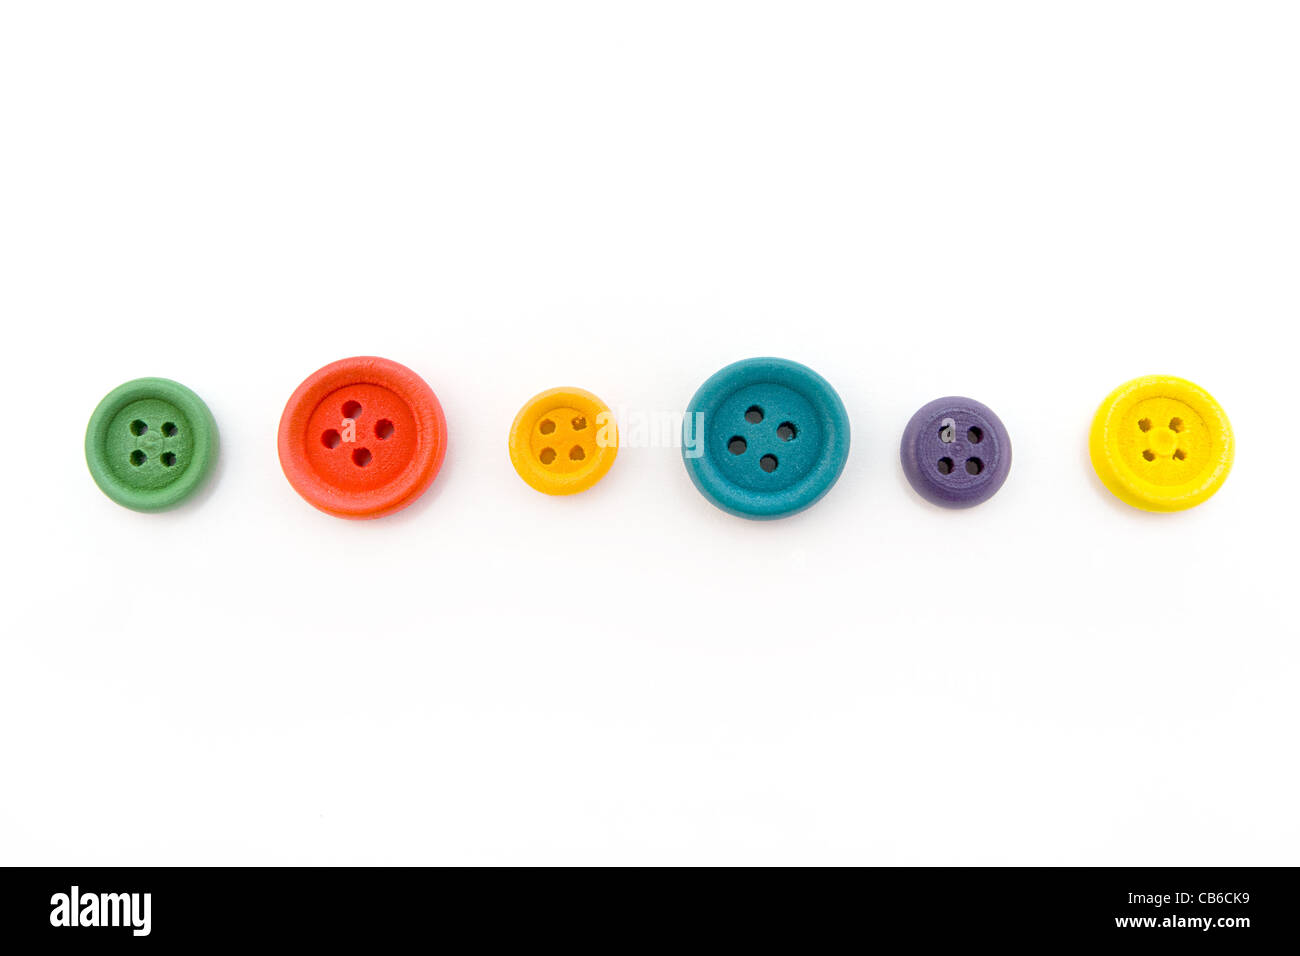 Line of colorful buttons isolated on white - Stock Image